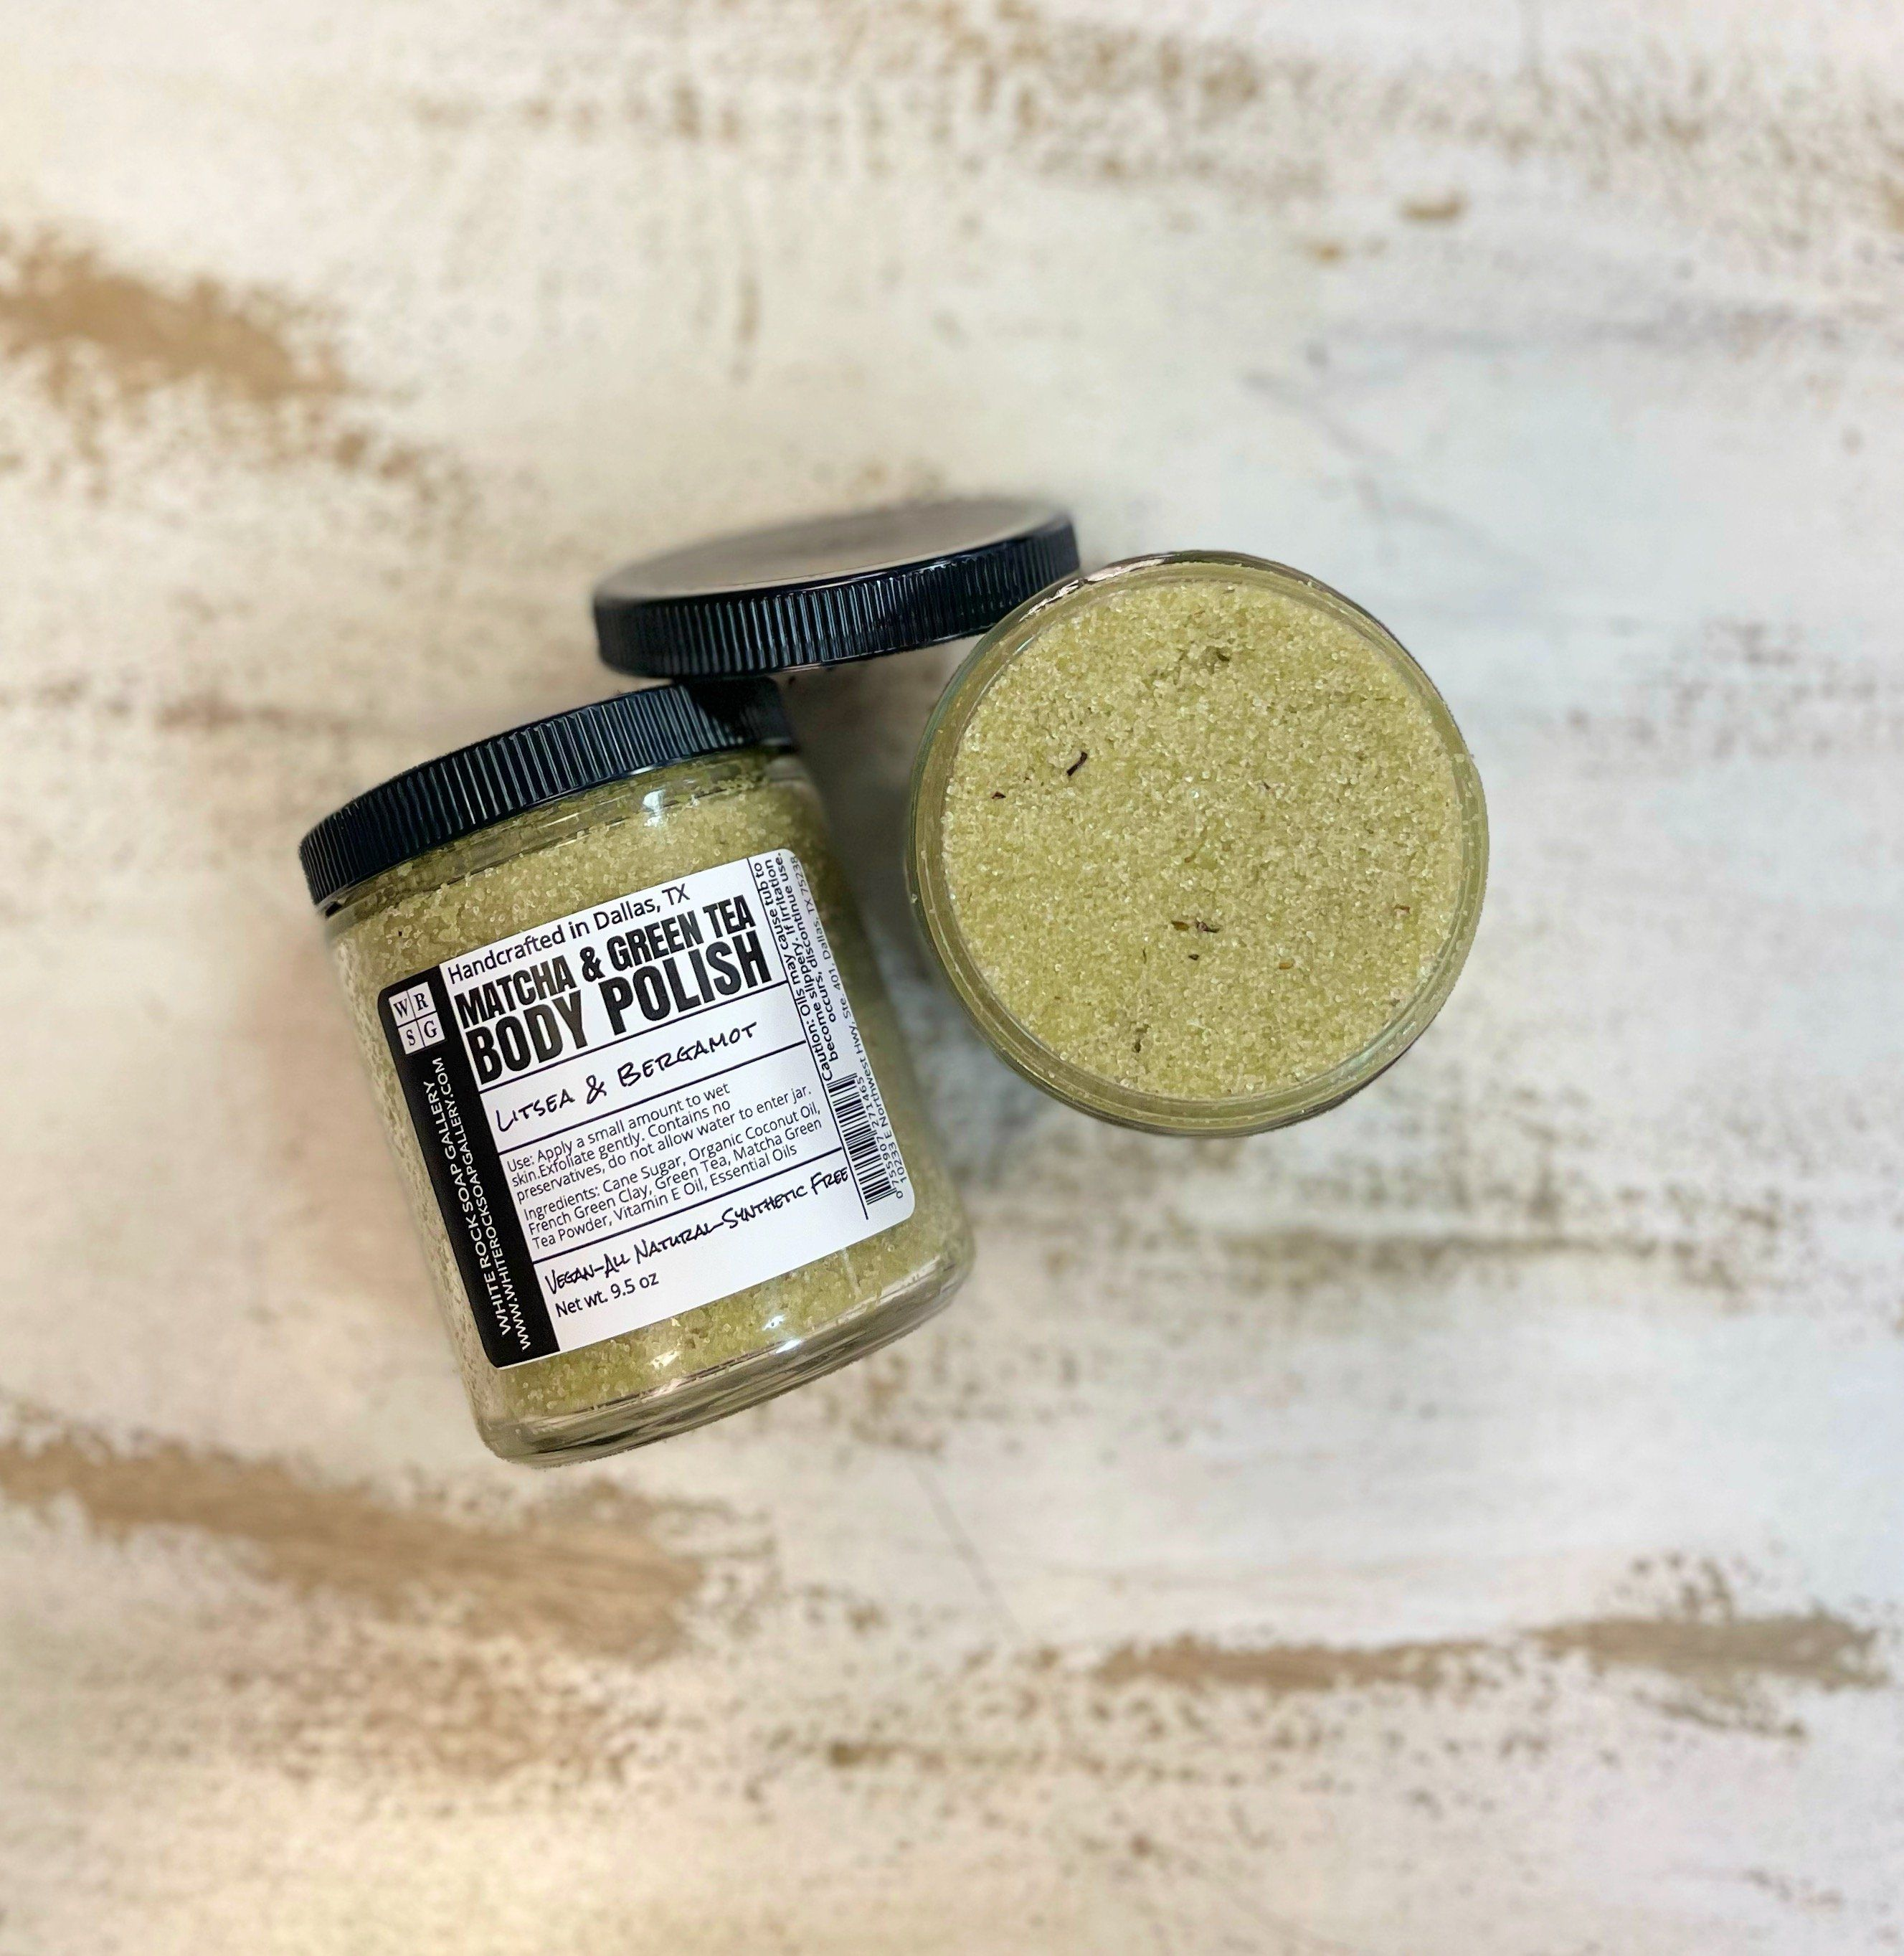 Matcha & Green Tea Body Polish